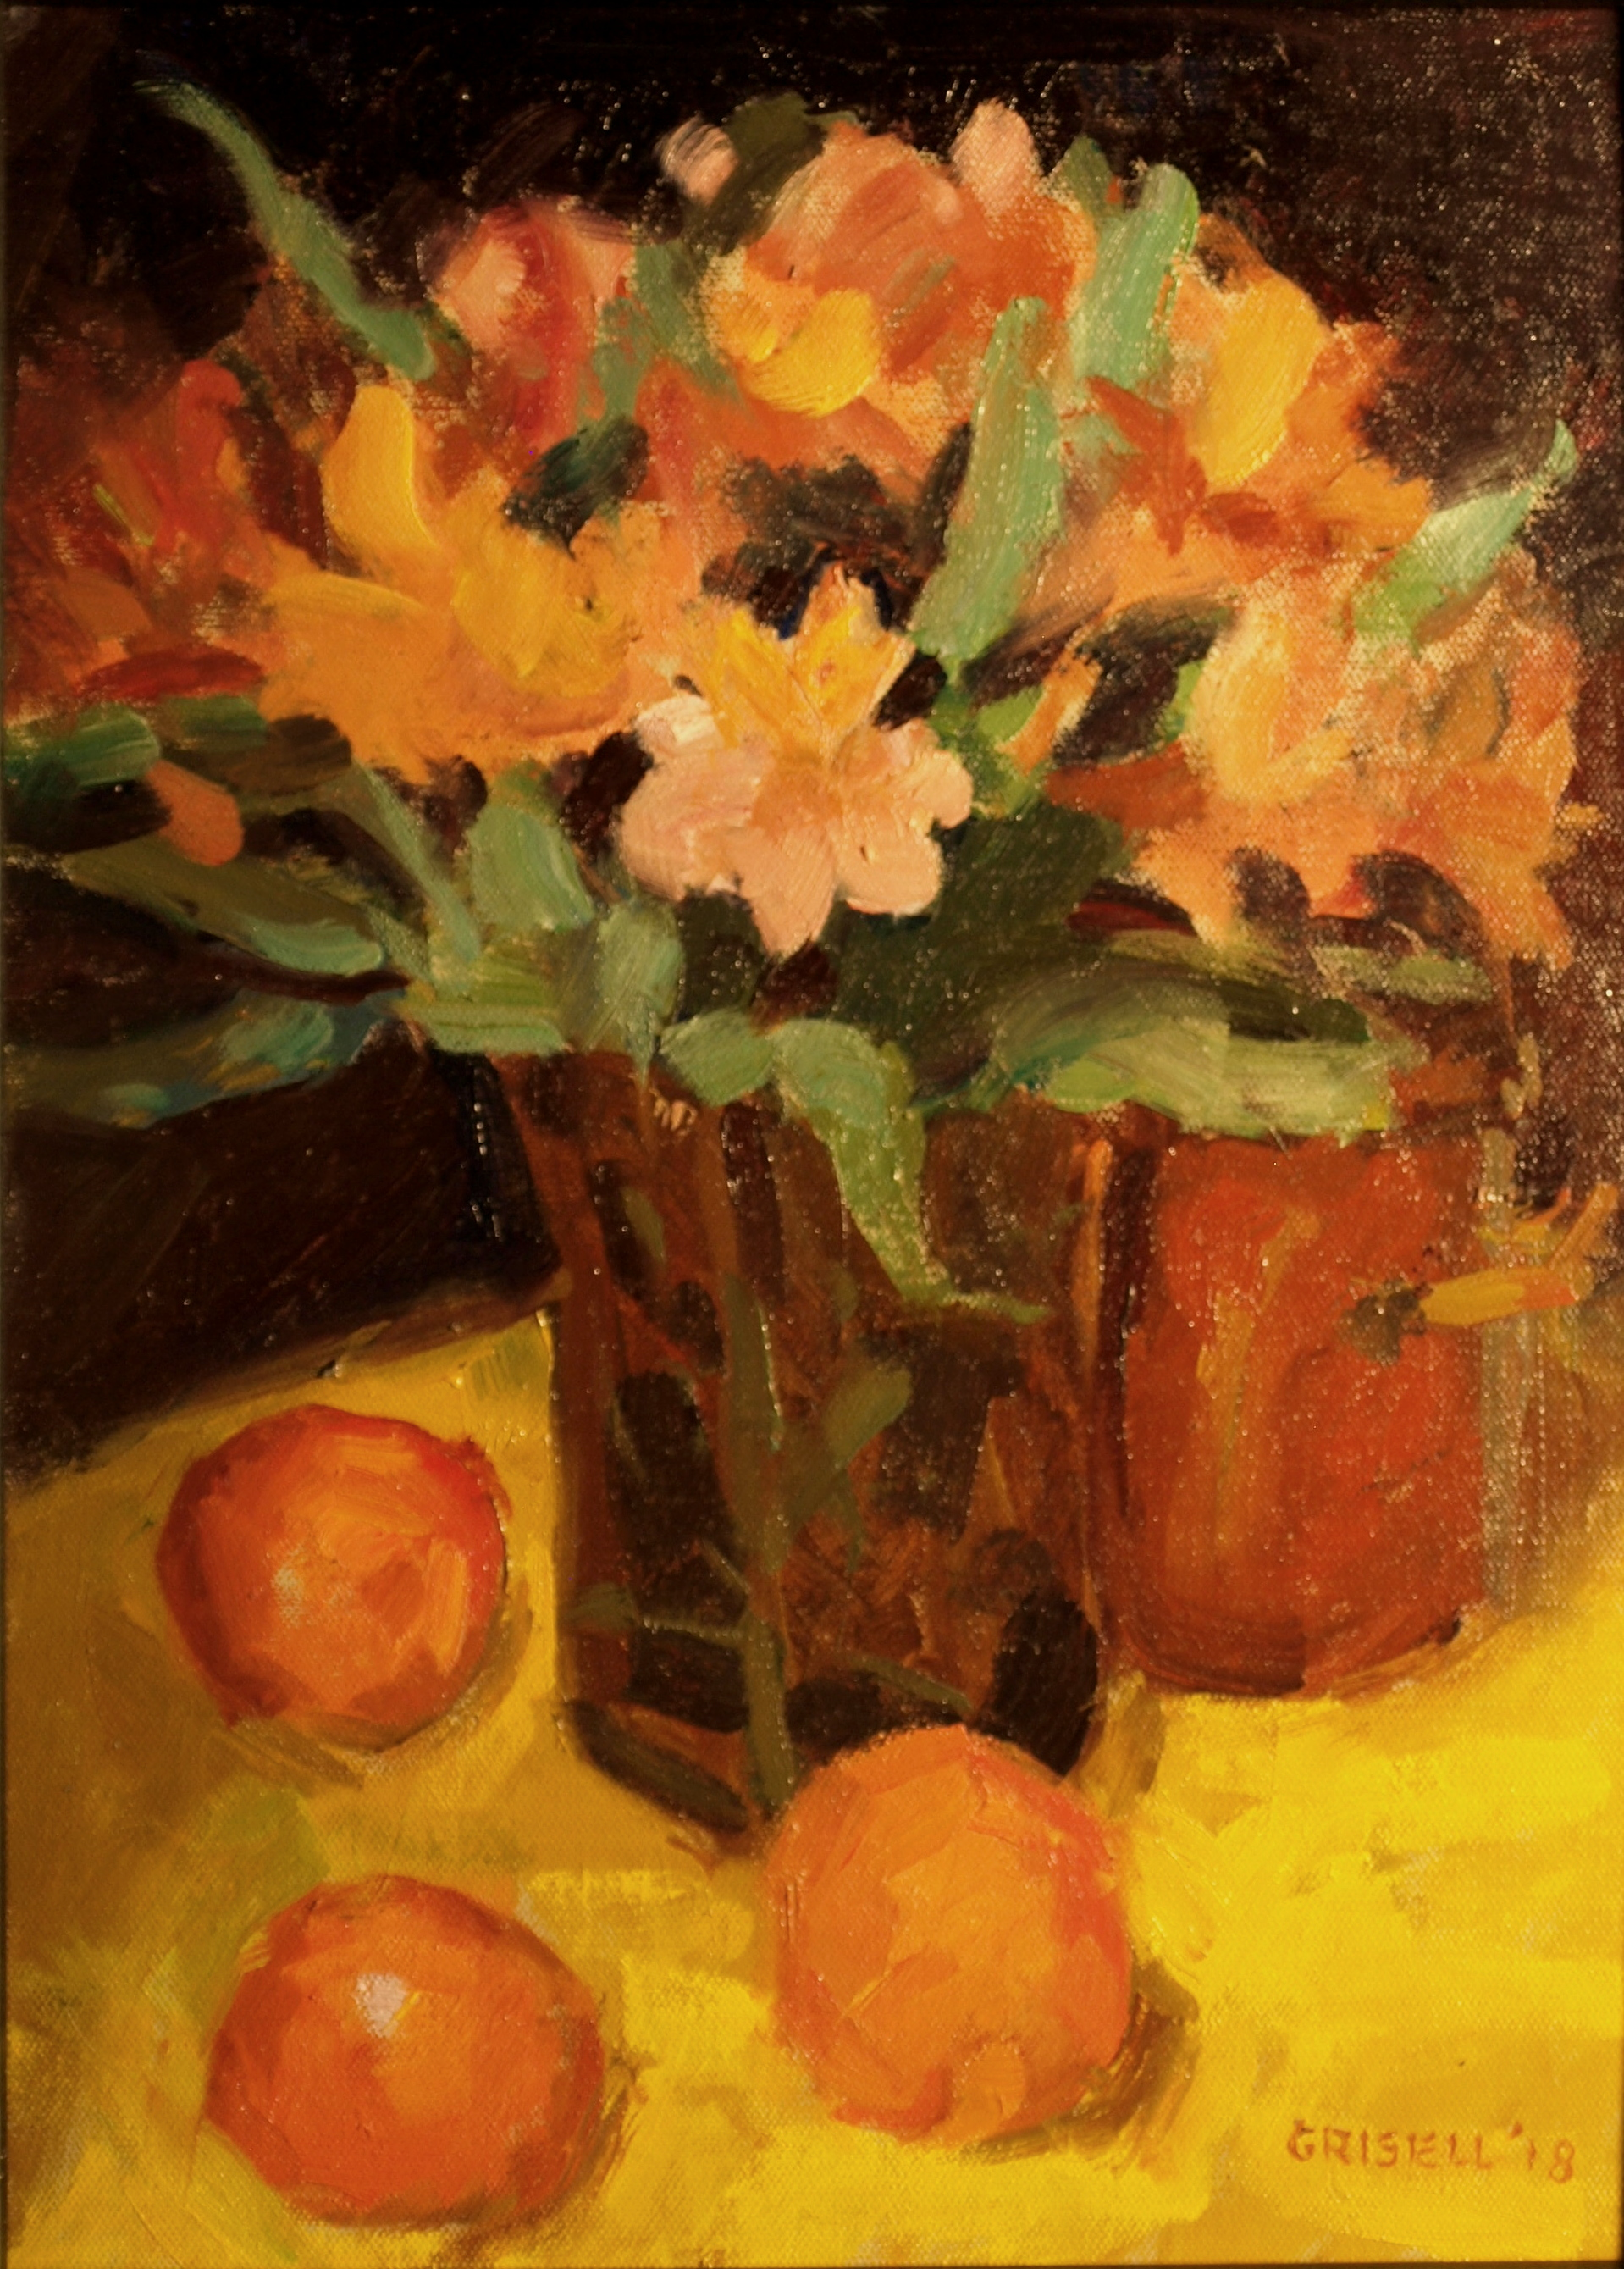 Alstromeria, Oil on Panel, 16 x 12 Inches, by Susan Grisell, $300